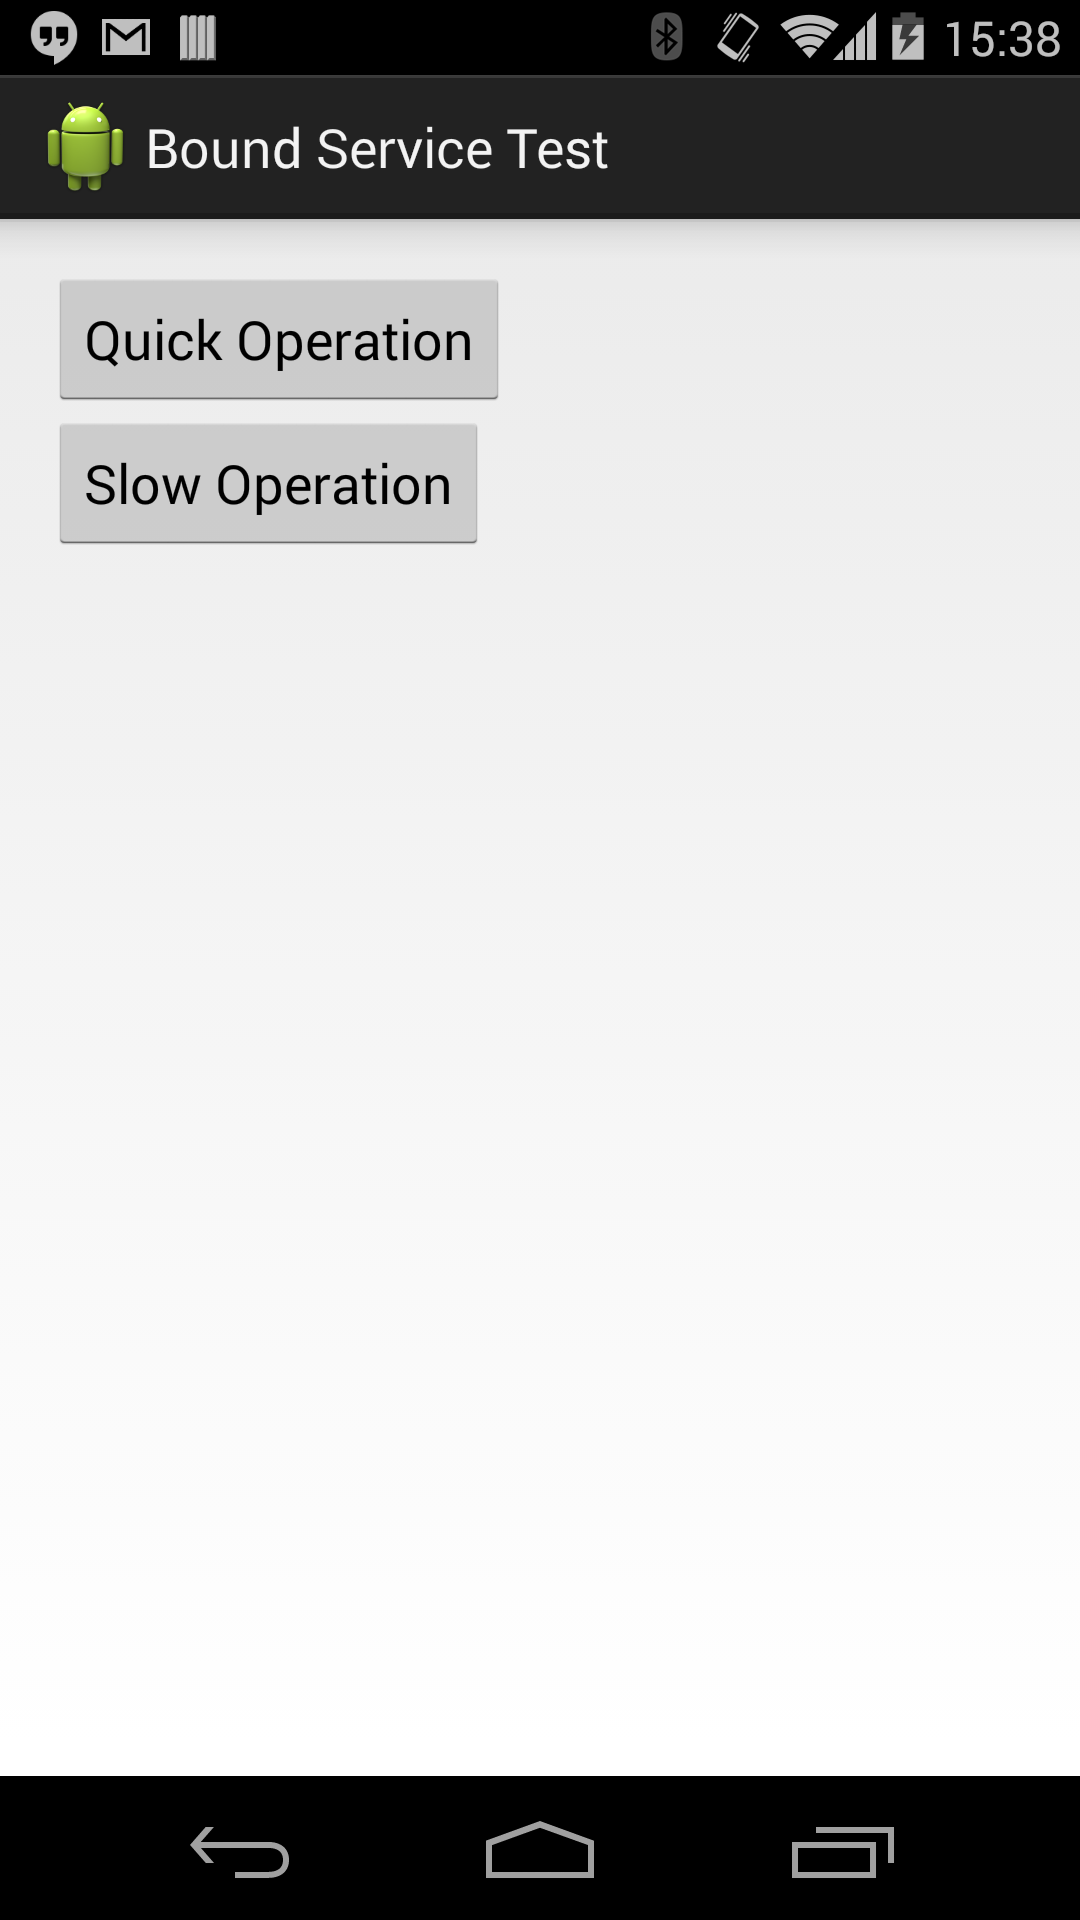 """Screenshot showing the test application with """"Quick Operation"""" and a """"Slow Operation"""" buttons"""